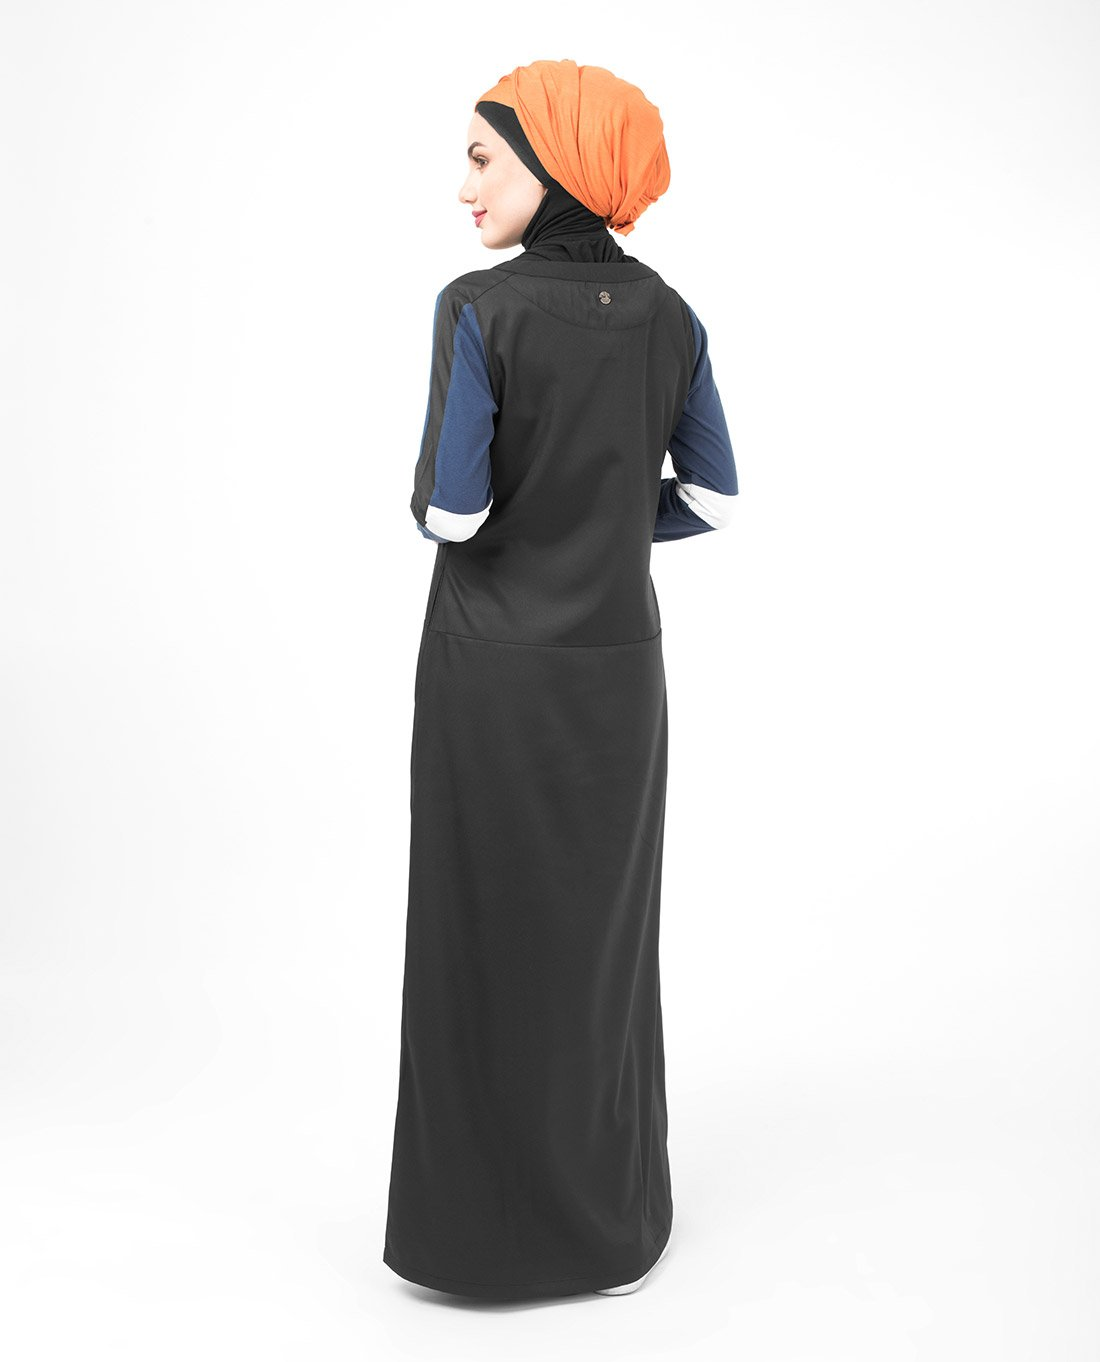 Silk Route Black Navy And White Subtle Curve Polyester Sporty Maxi Dress Jilbab Large 54 by Silk Route (Image #6)